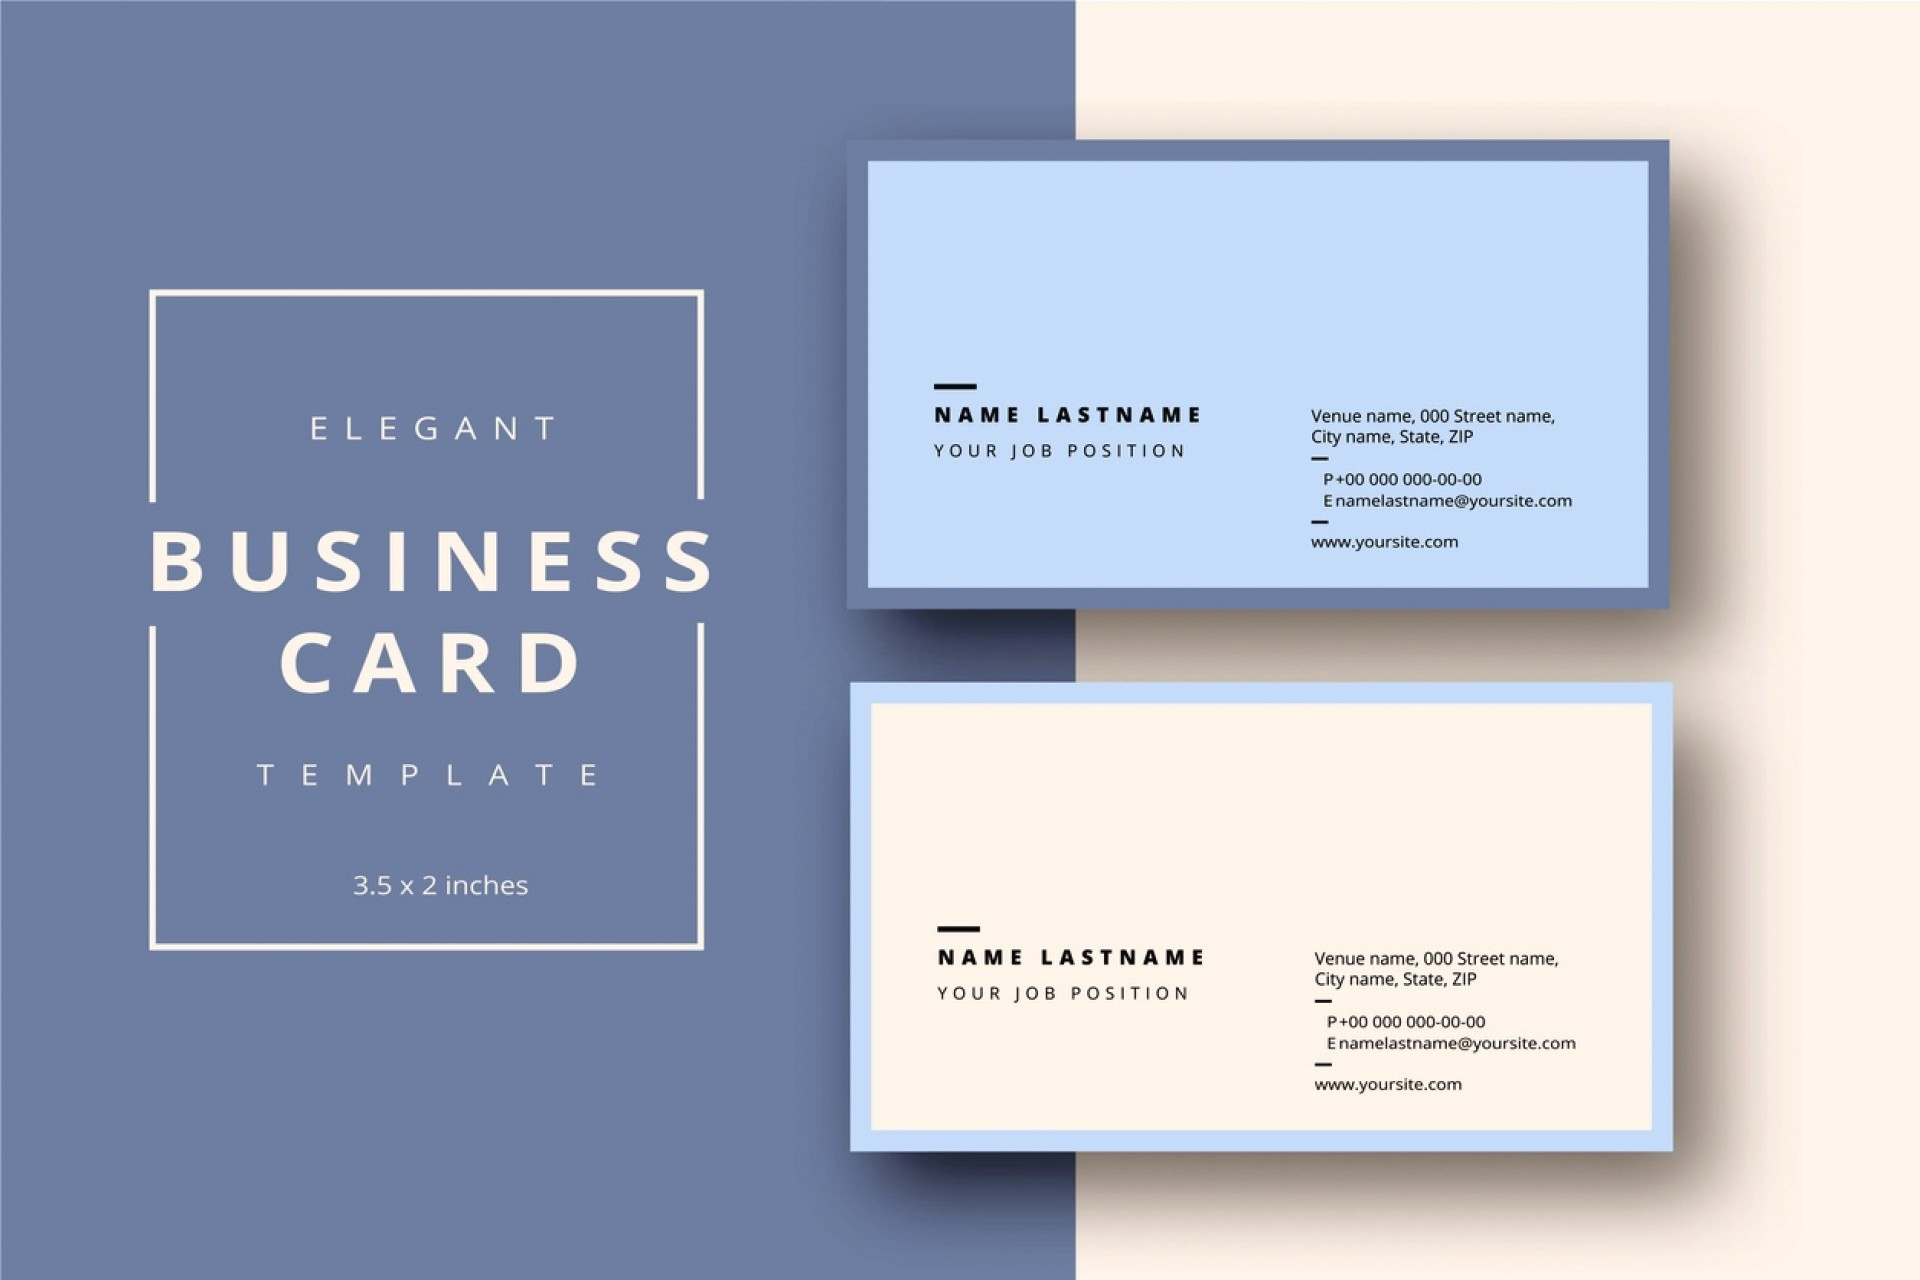 Word Busines Card Template Free Download  Microsoft 2007 Double Sided Blank1920